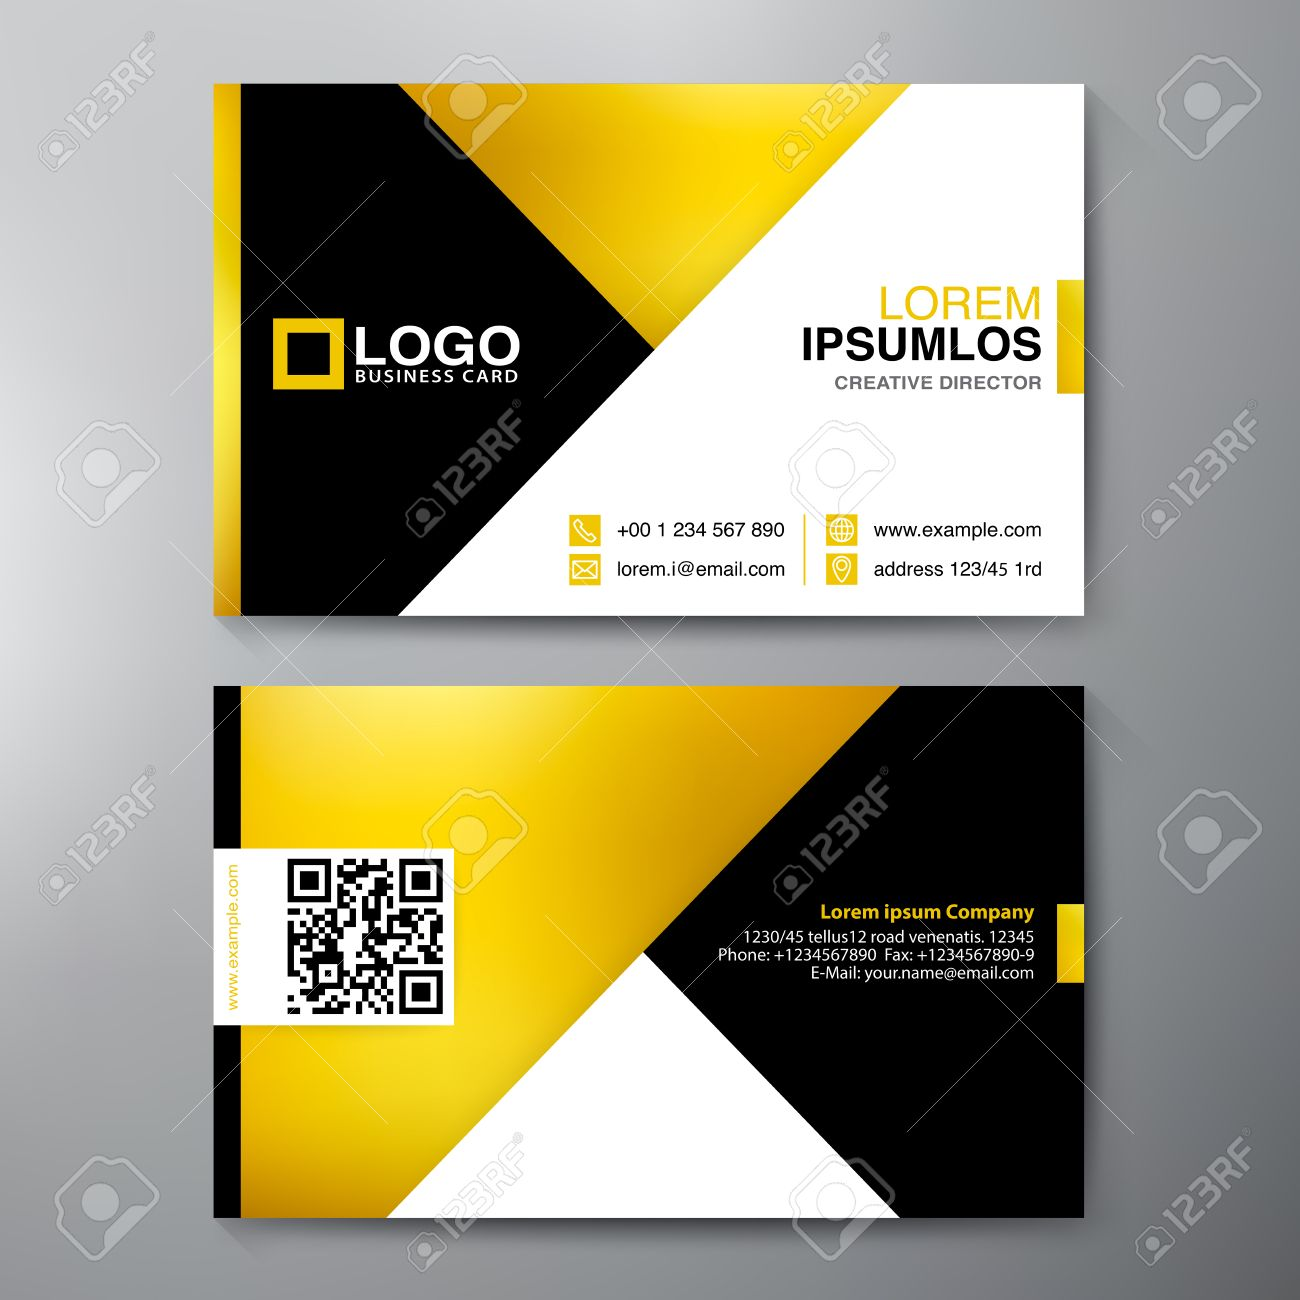 Business card design template images free business cards modern business card design template vector illustration royalty modern business card design template vector illustration stock magicingreecefo Choice Image